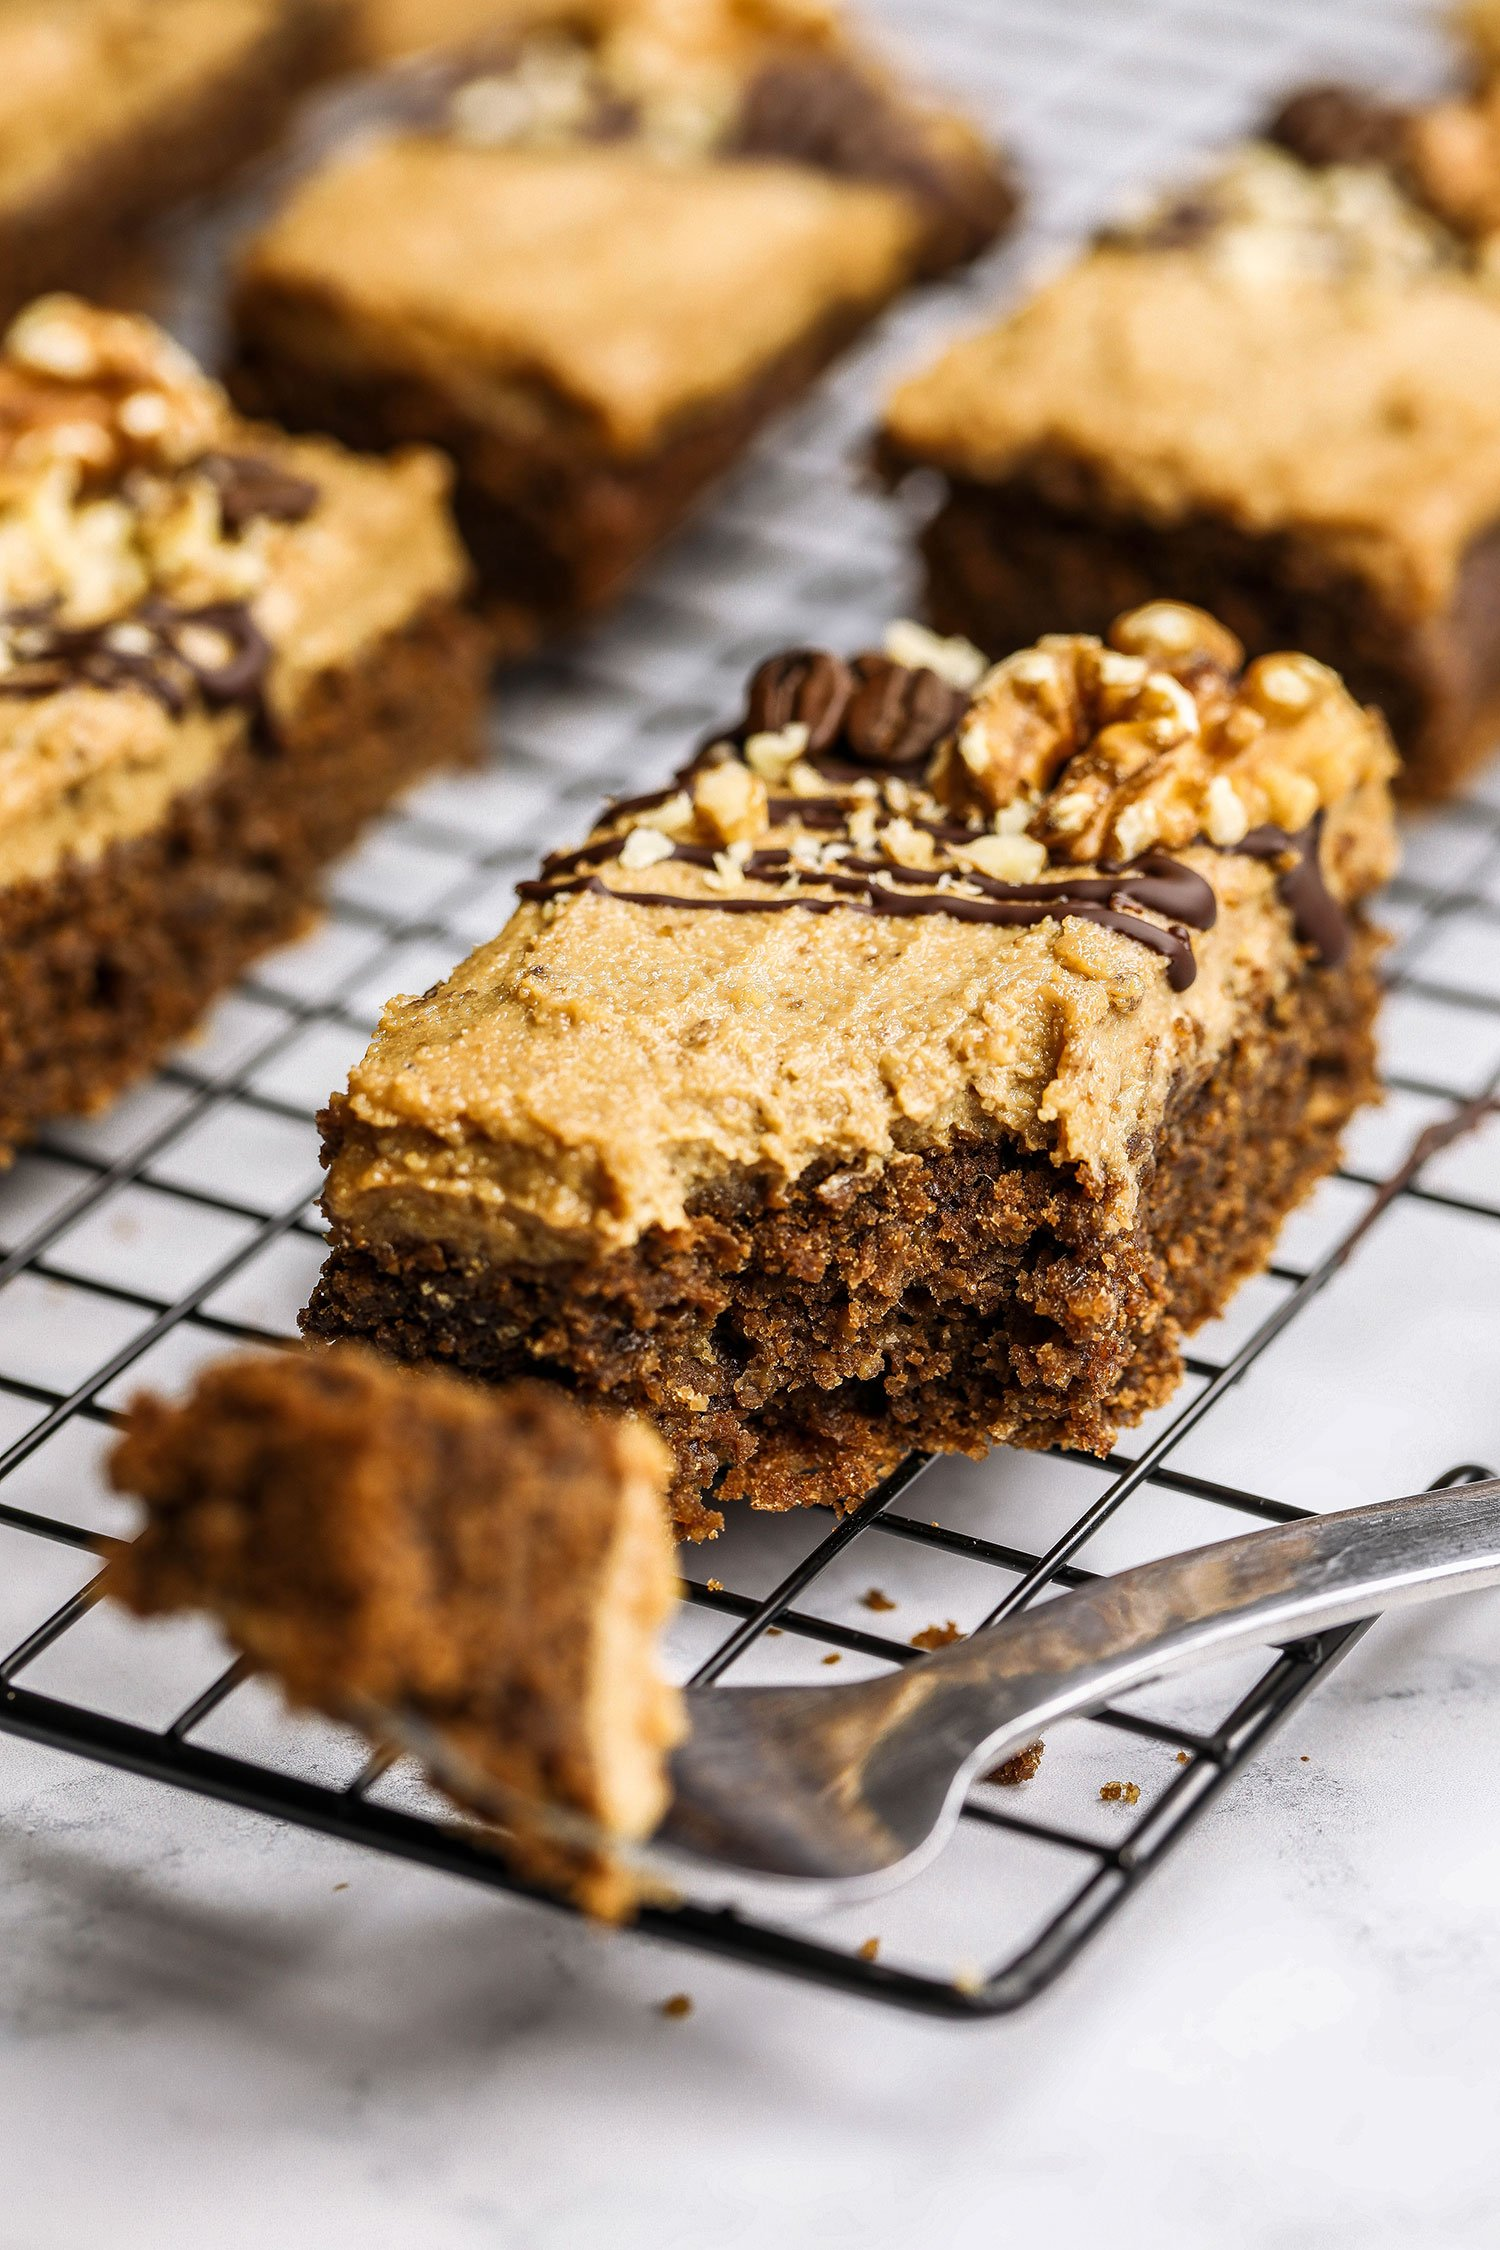 vegan gluten-free Walnut Coffee Cake